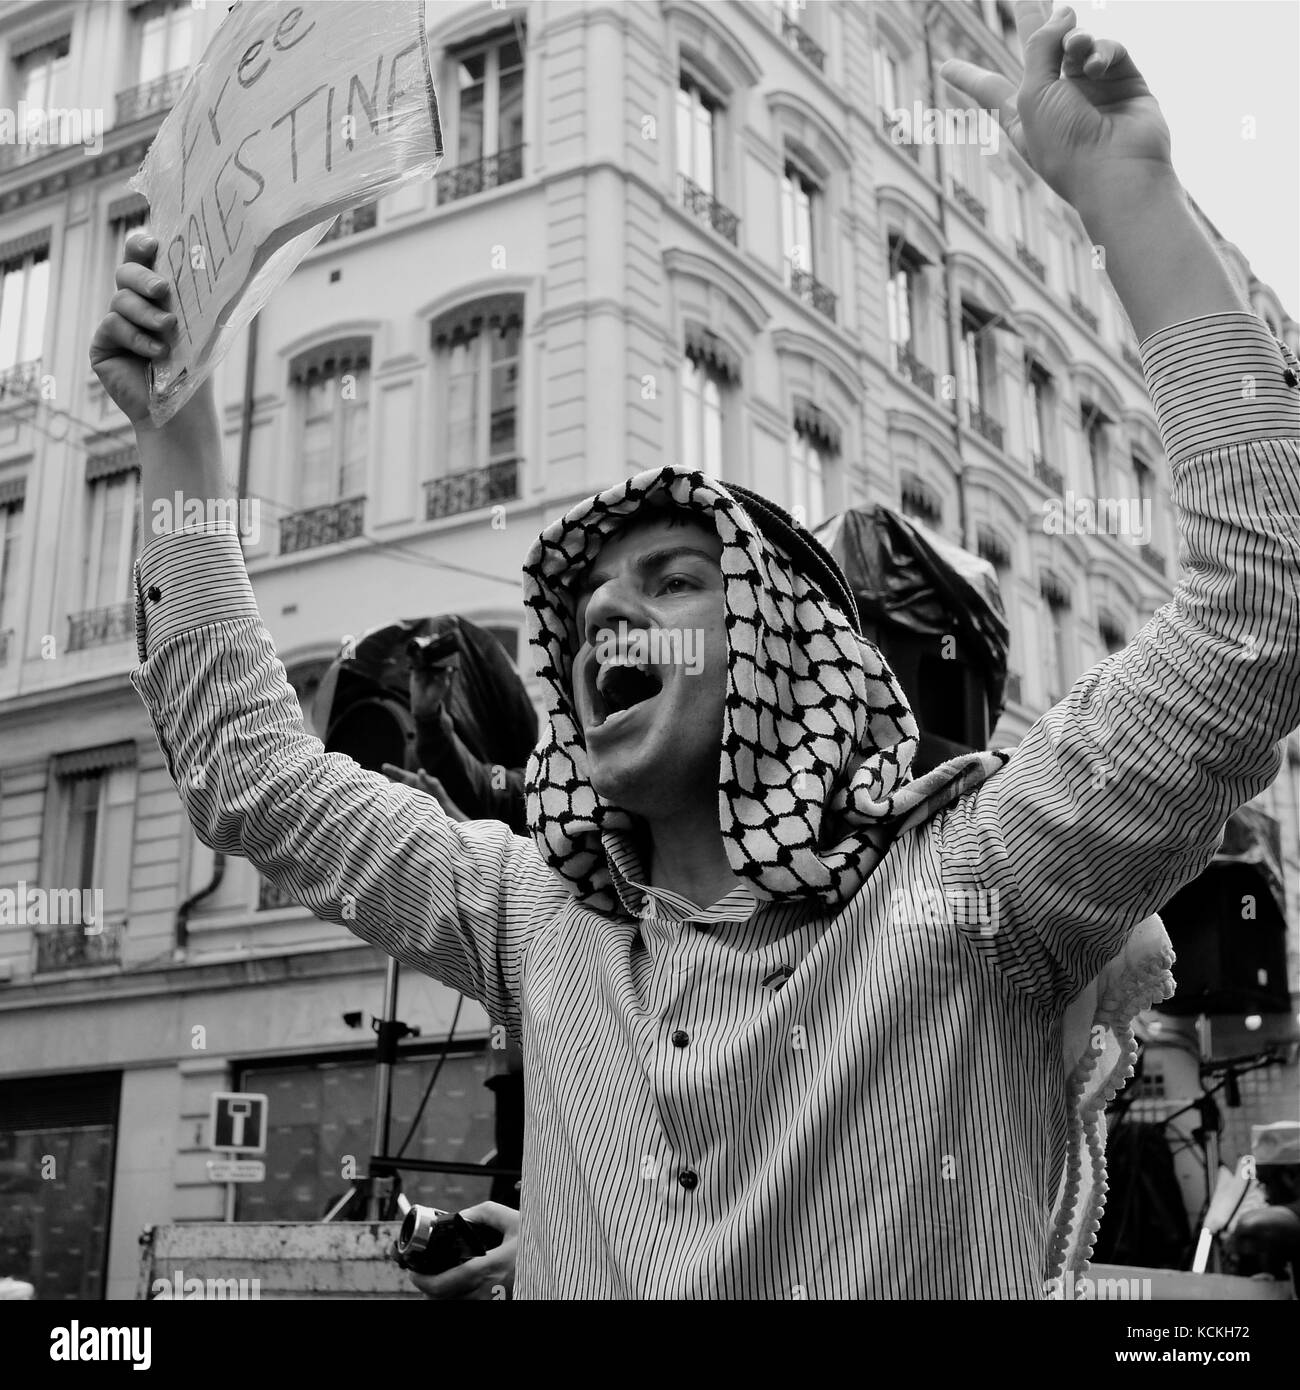 Pro Palestinian protesters march in Lyon, France - Stock Image